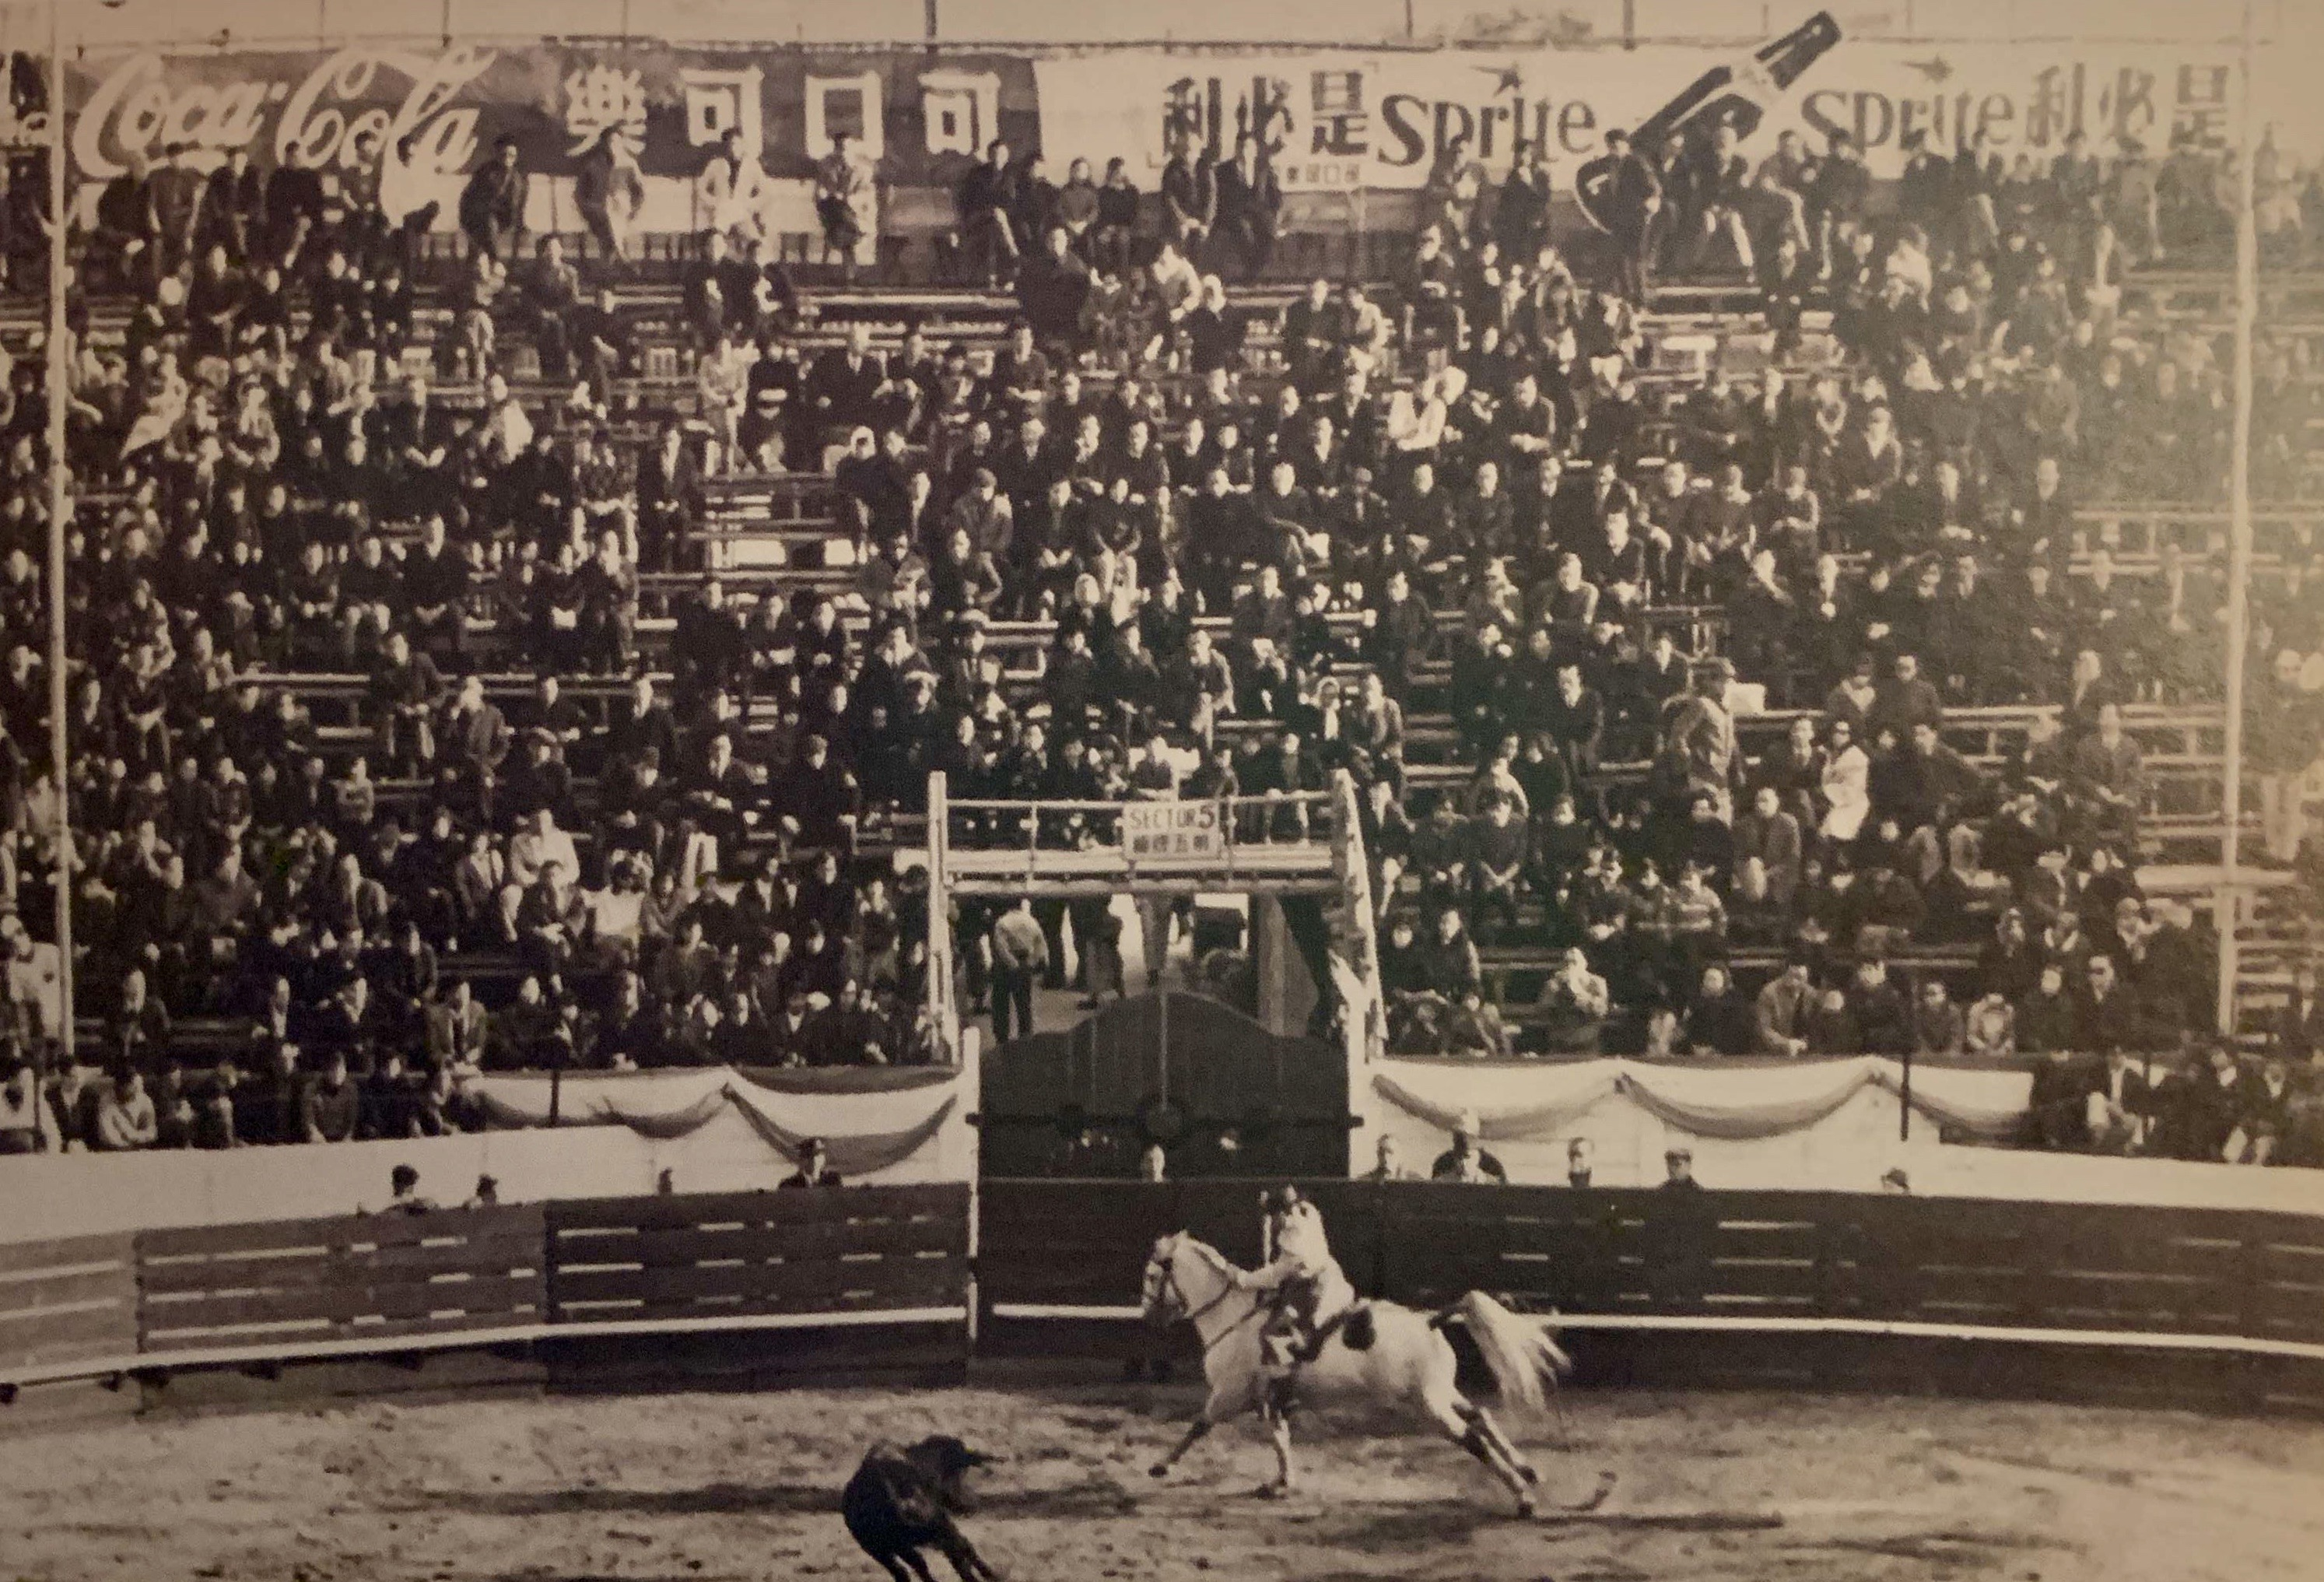 Old Macau photos Bull Fight Square Macau circa 60 Source Coca Cola Celebratory Postcard